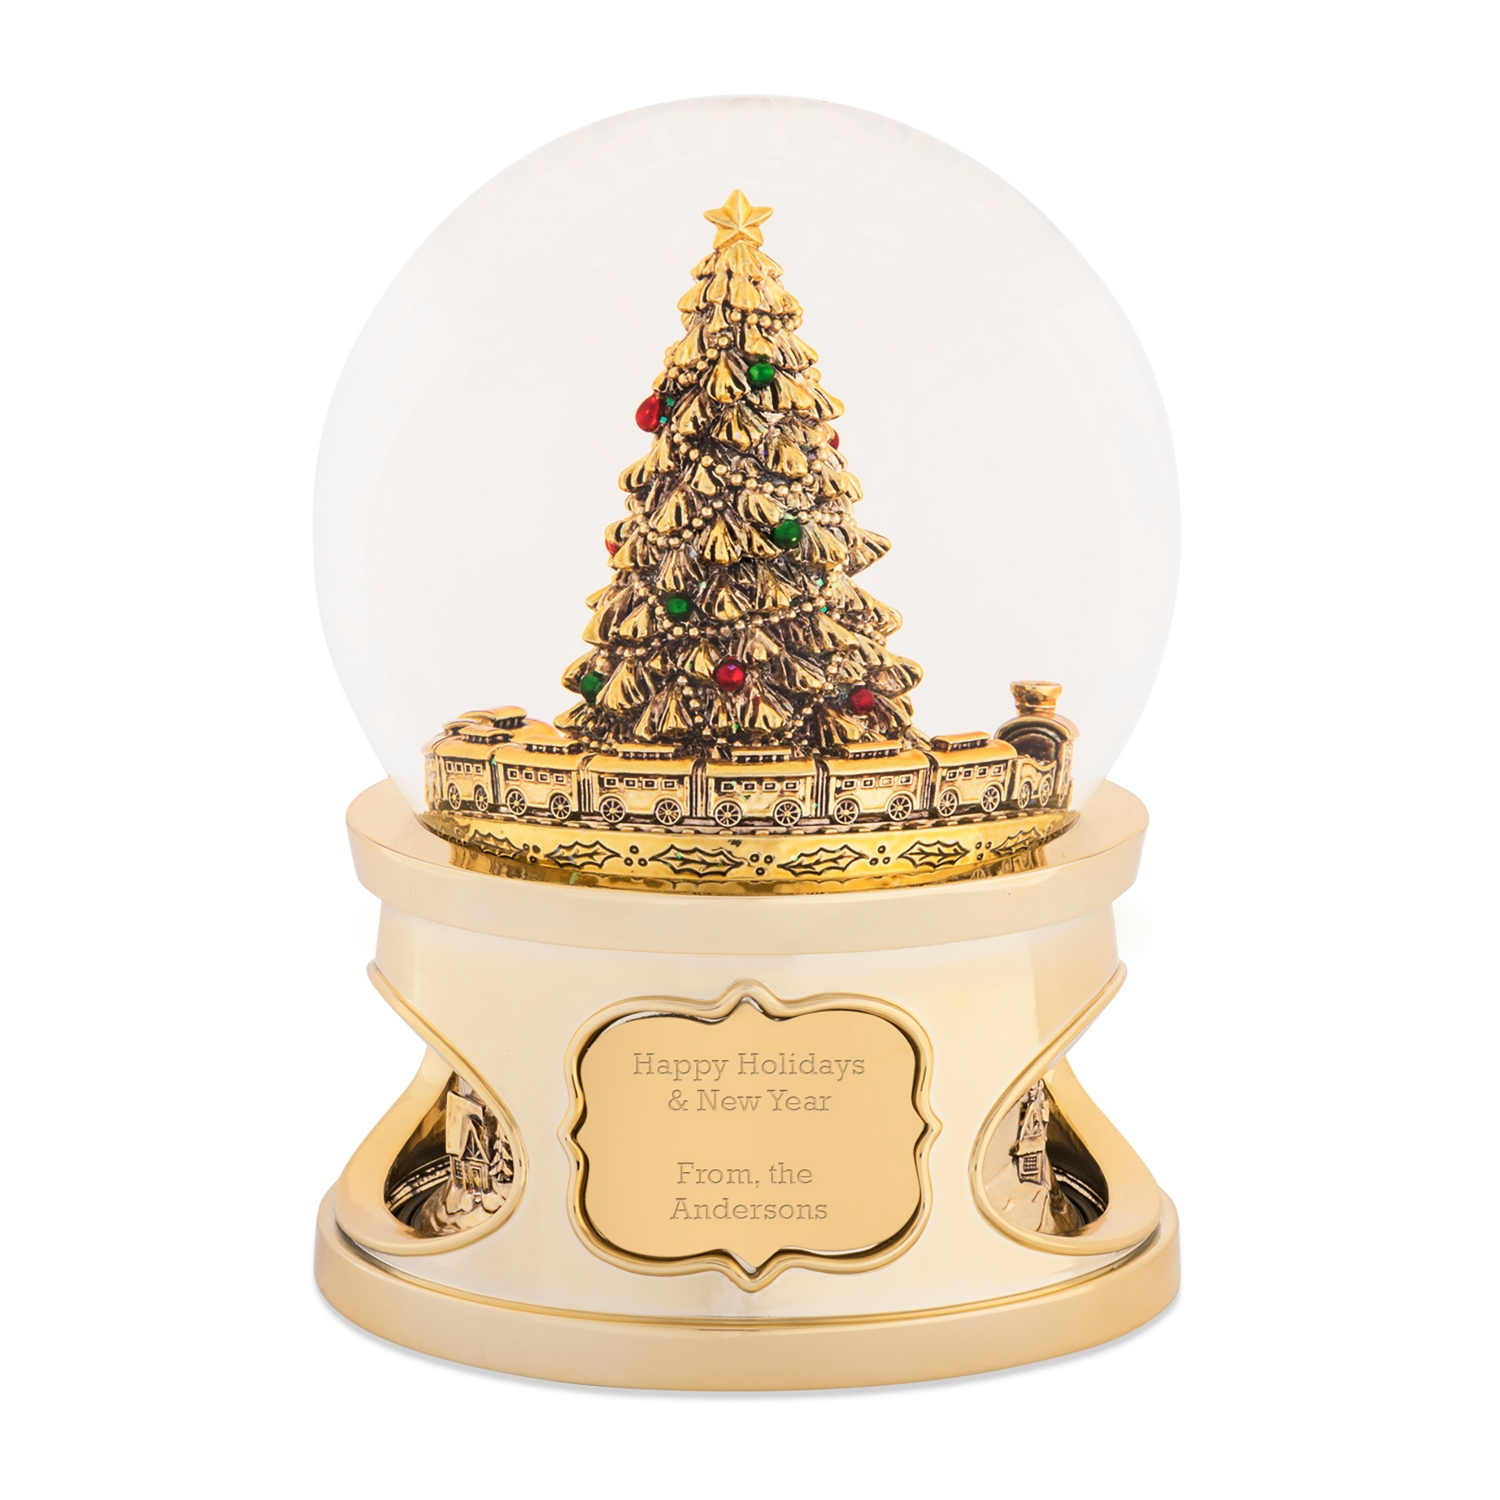 gold tree and train musical snow globe - Christmas Musical Snow Globes